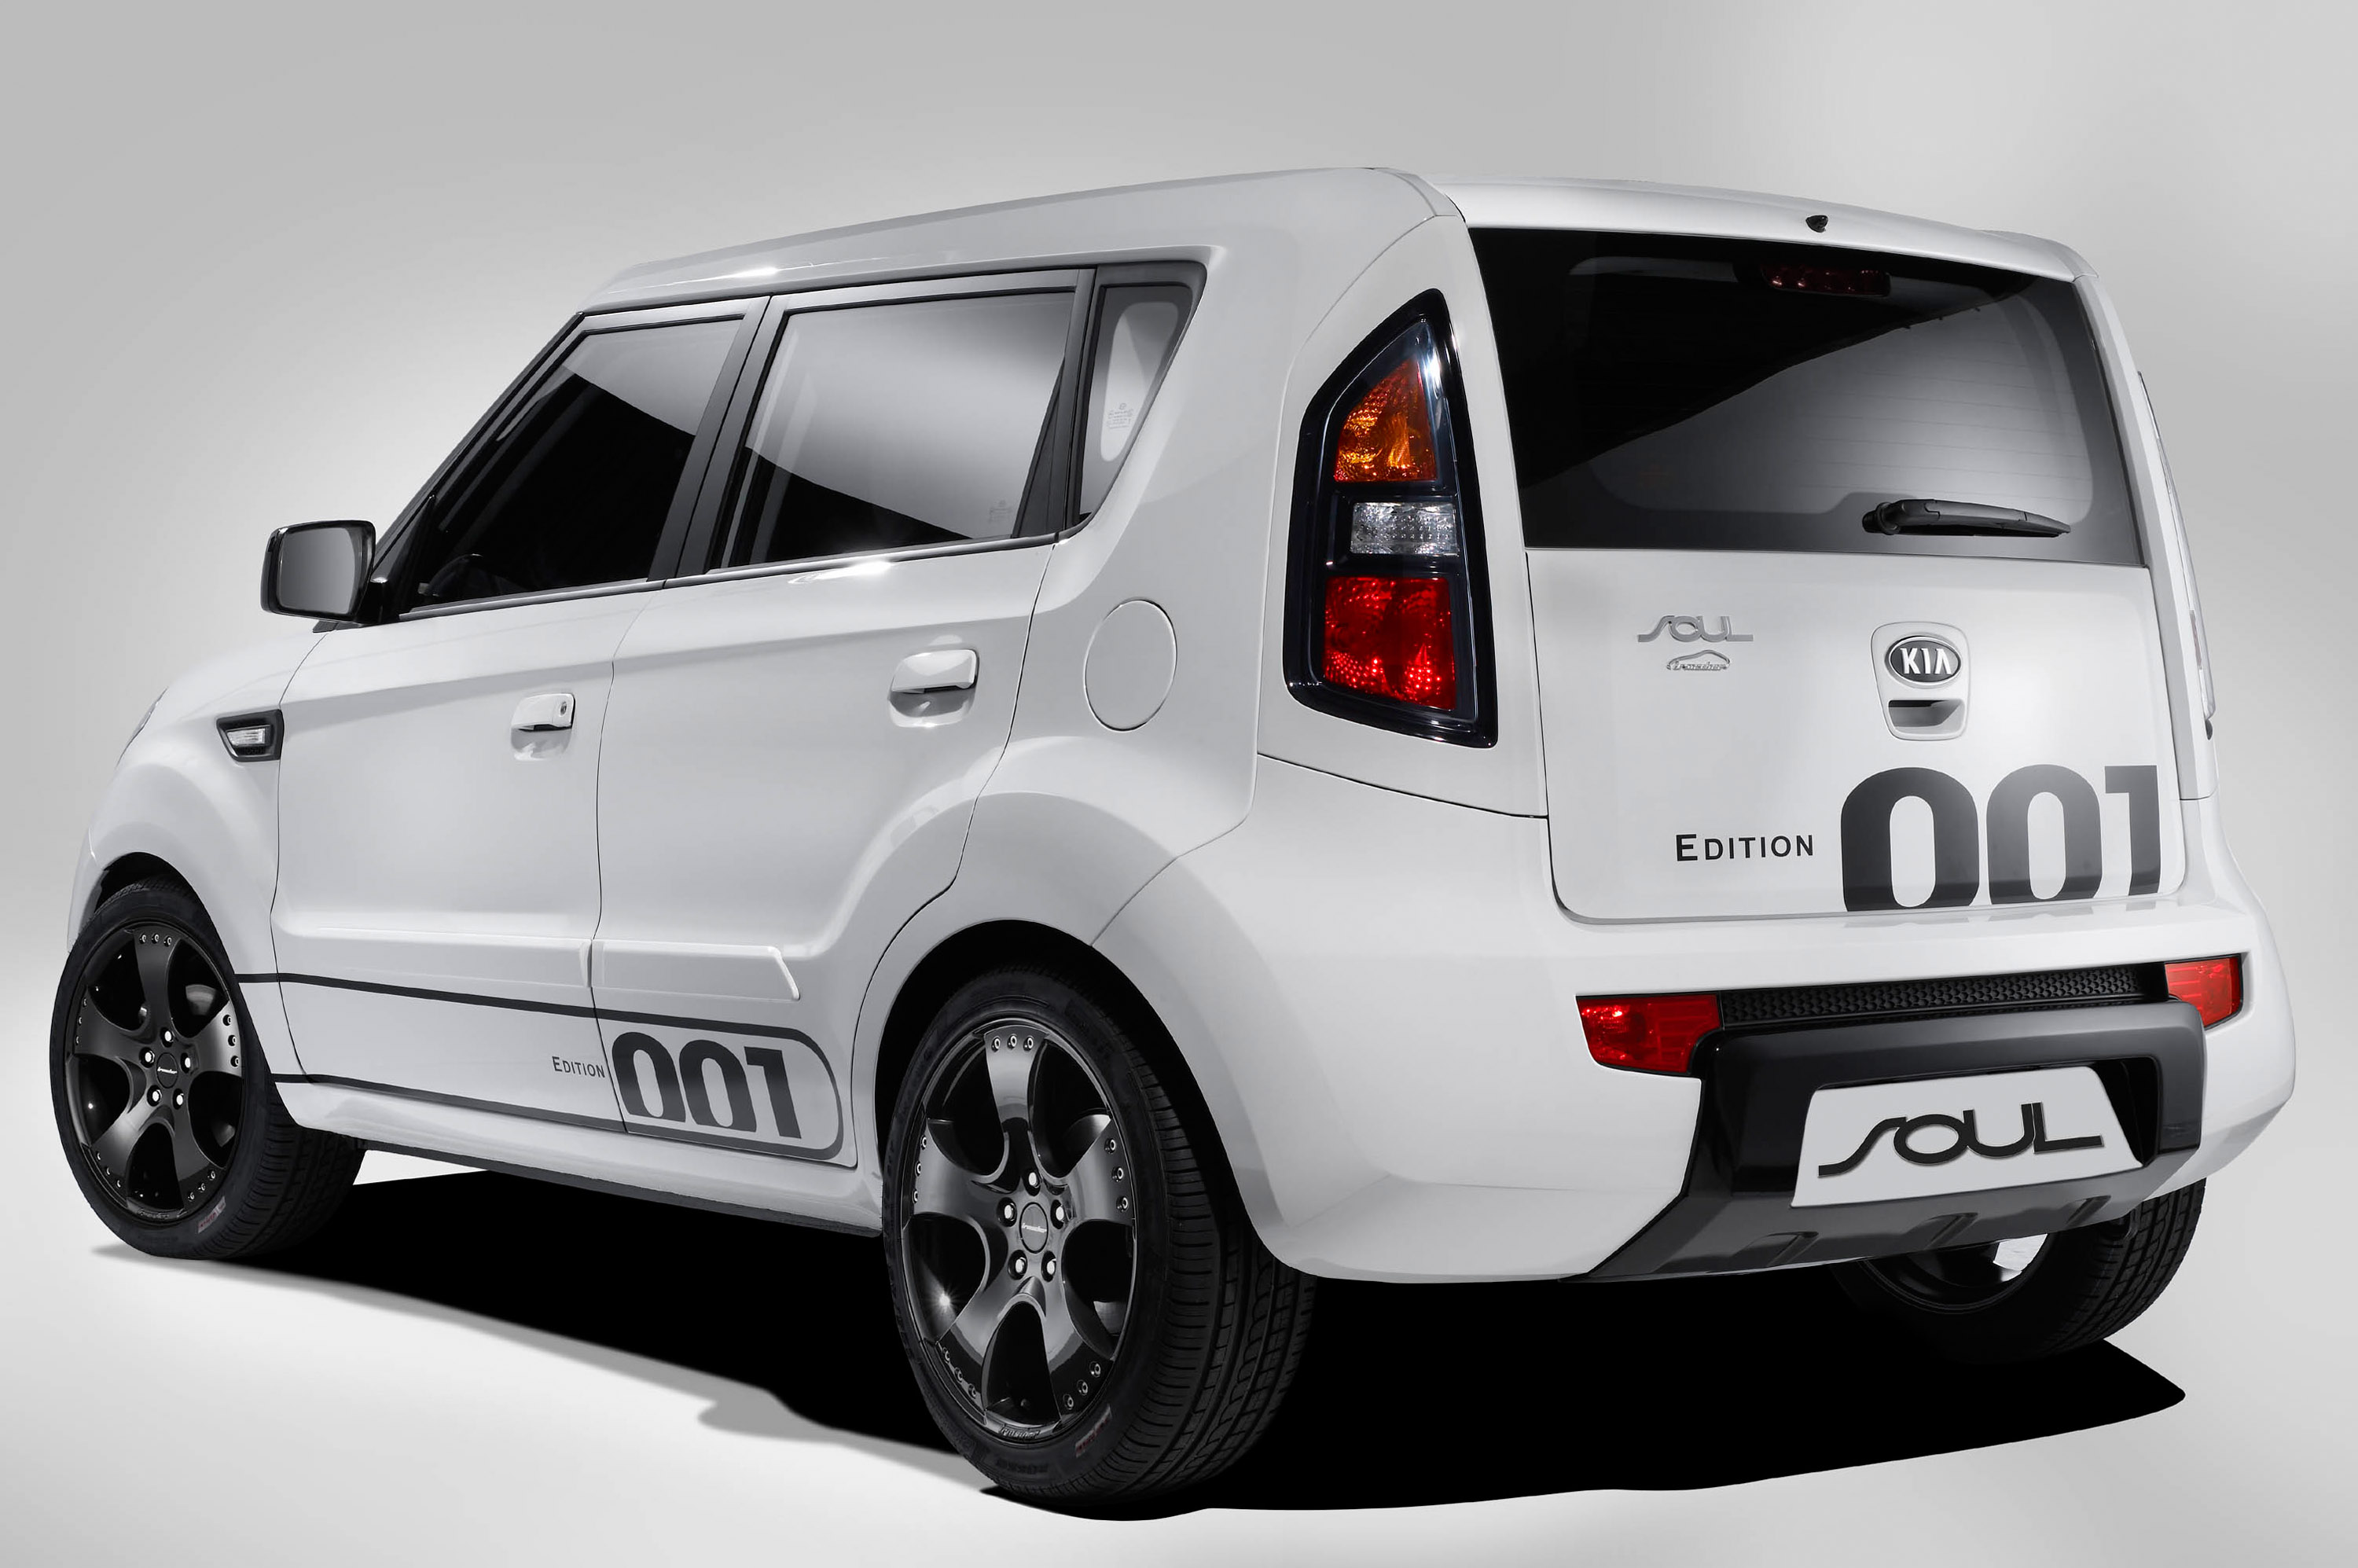 Kia Soul Irmscher Edition 001 Pure Royal Ness